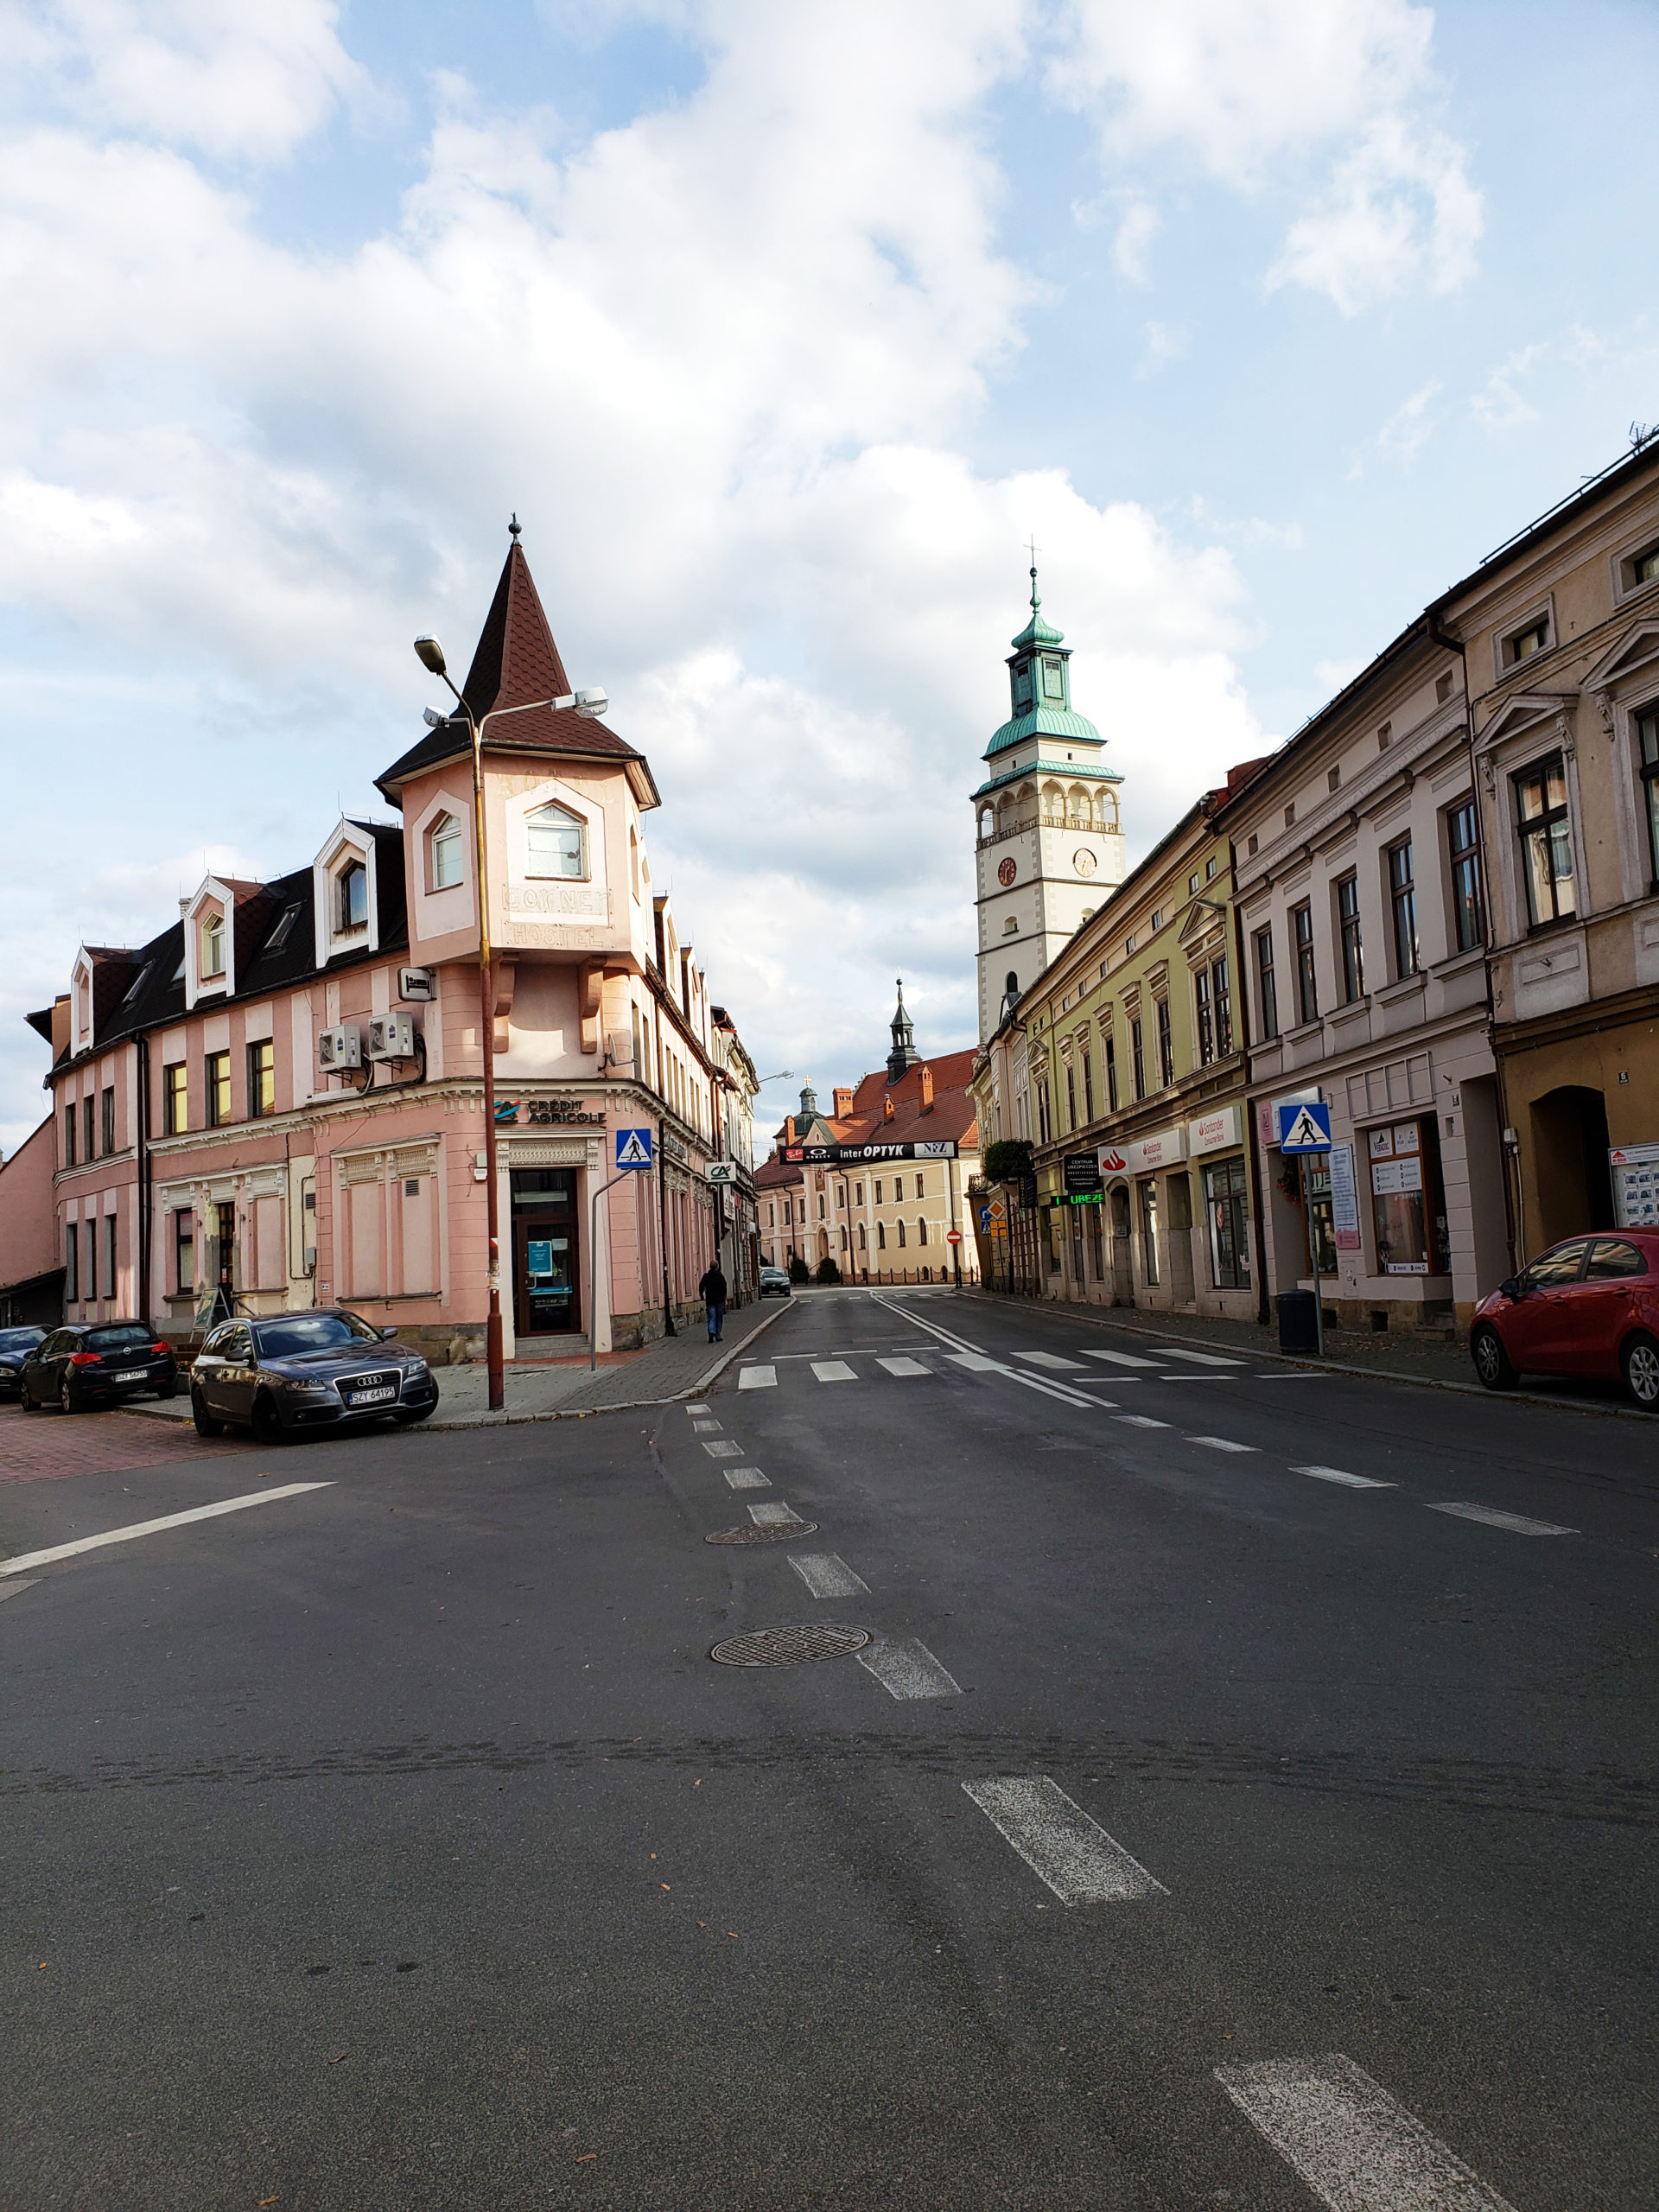 Discover This Hidden Gem In Poland - Welcome To Żywiec